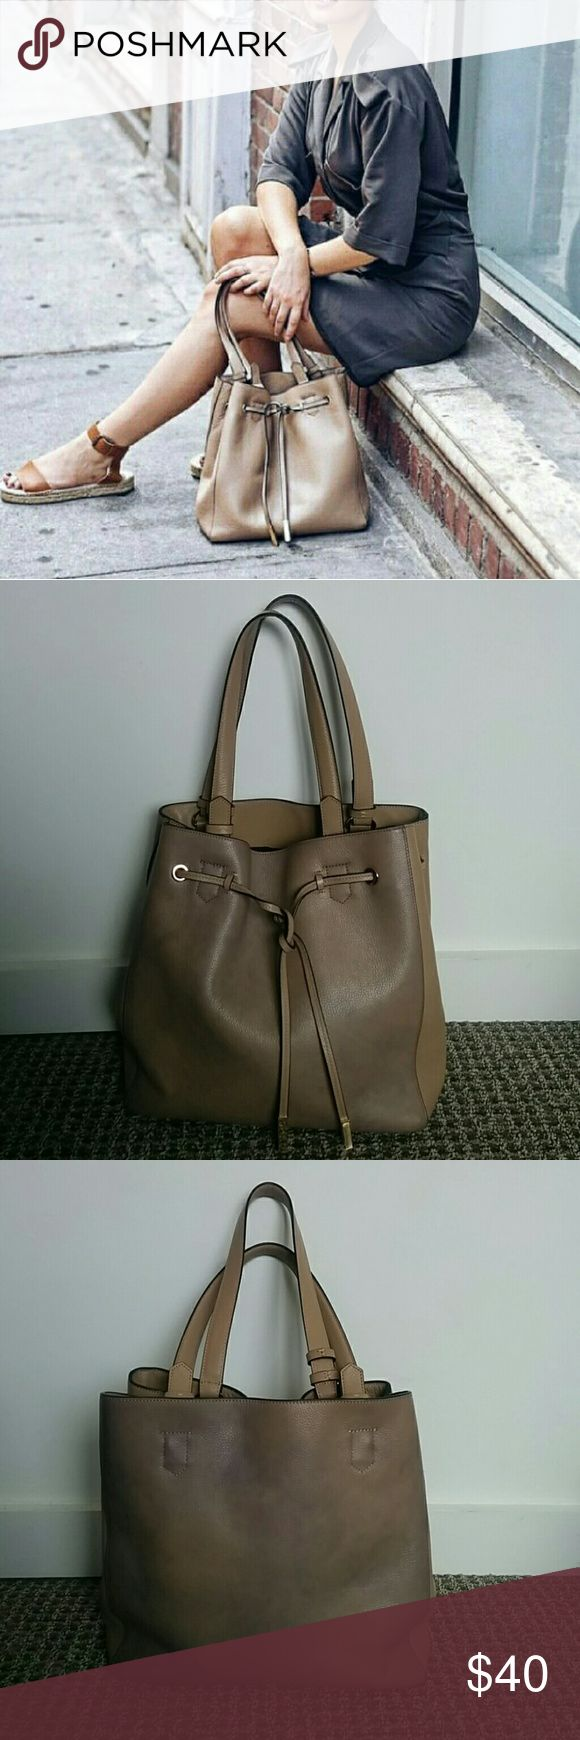 Reiss cream tote Soft supple leather tote in a beige leather. There is some color staining of the front and back of the bag from denim. The marbling gives it an interesting texture. Price reflects the staining. Reiss Bags Shoulder Bags